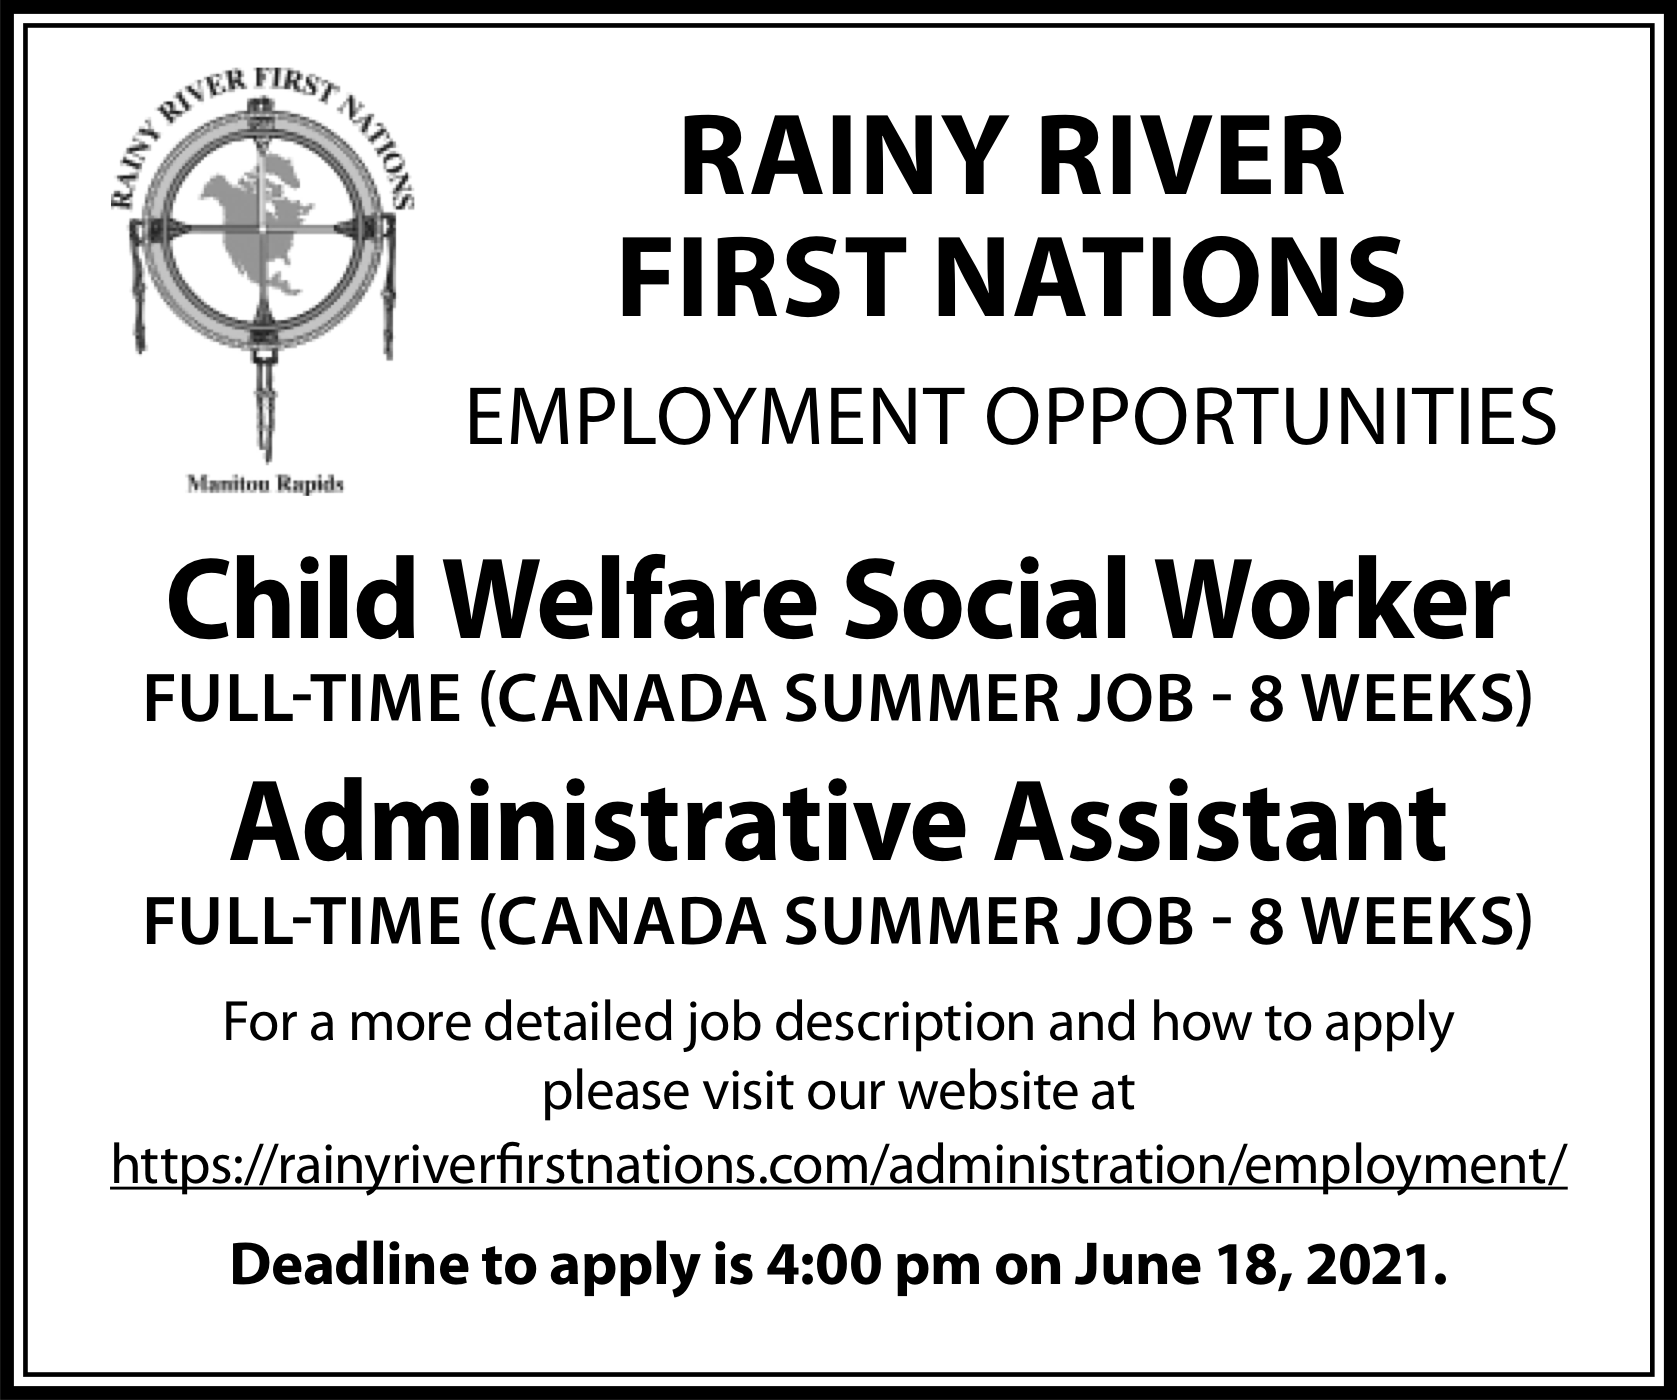 Child Welfare Social Worker, Administrative Assistant